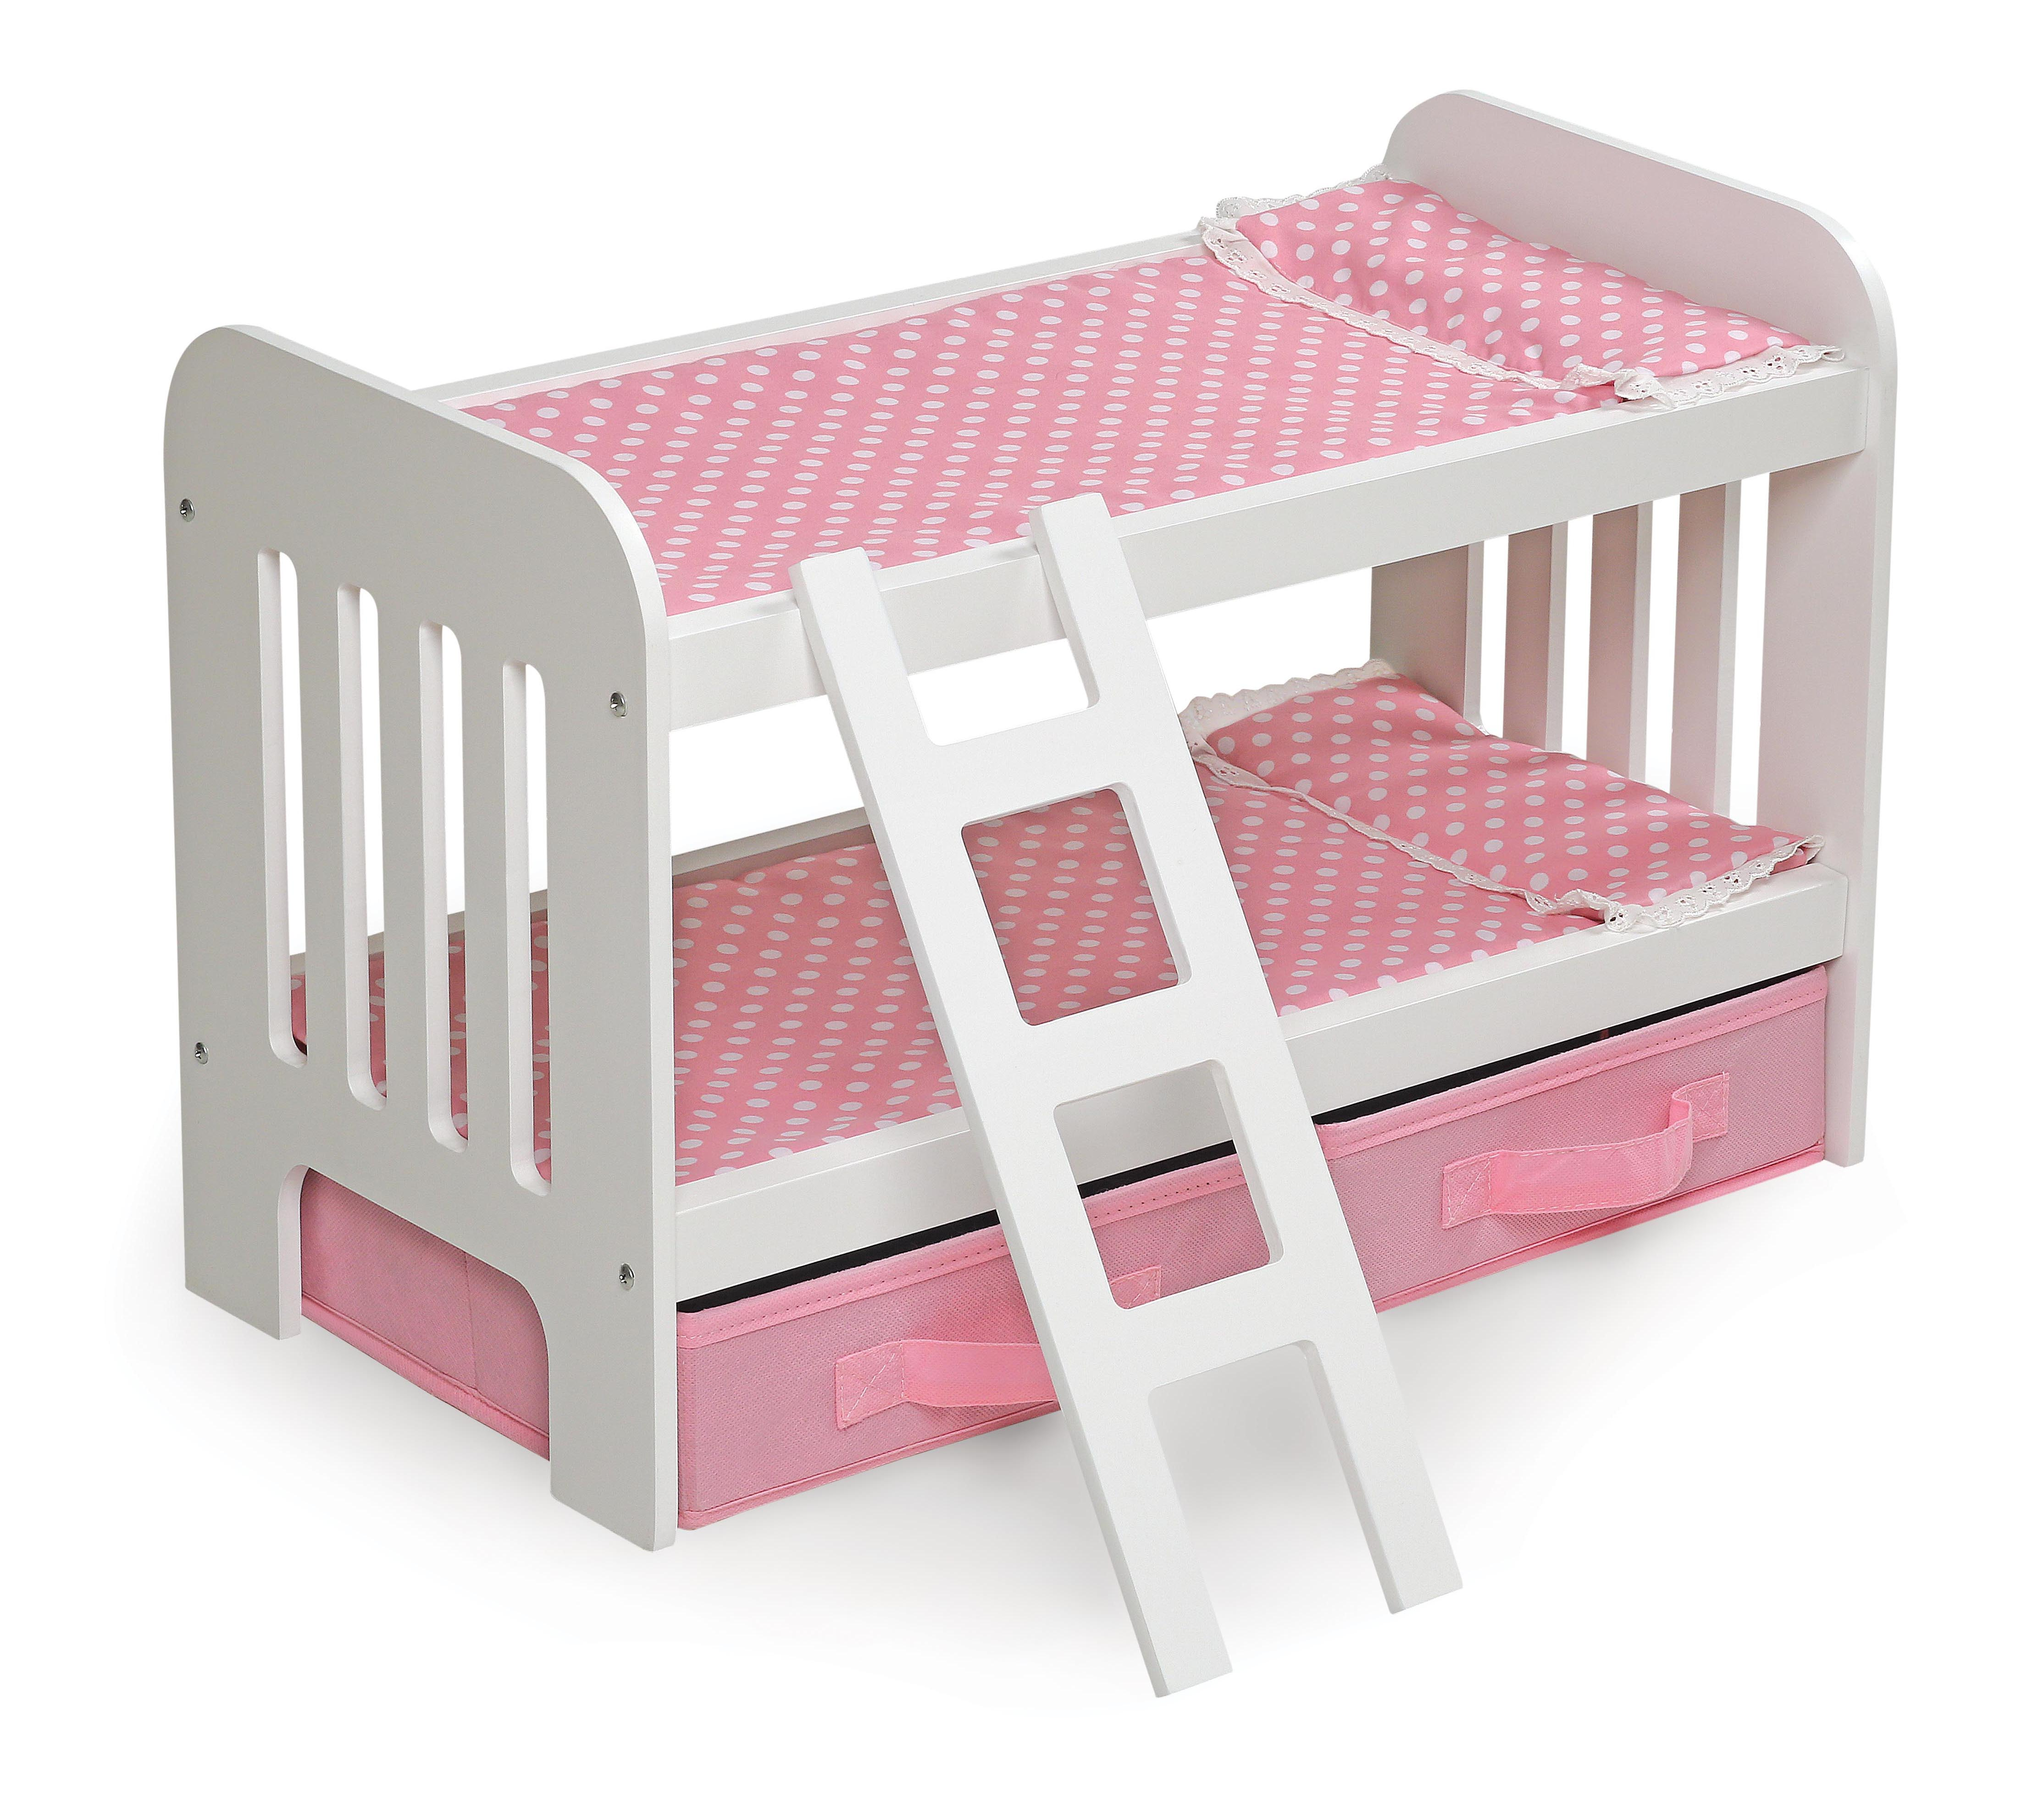 Badger Basket Doll Bunk Bed with Ladder and Two Storage Baskets Pink Polka Dot Fits American Girl, My Life As & Most... by Badger Basket